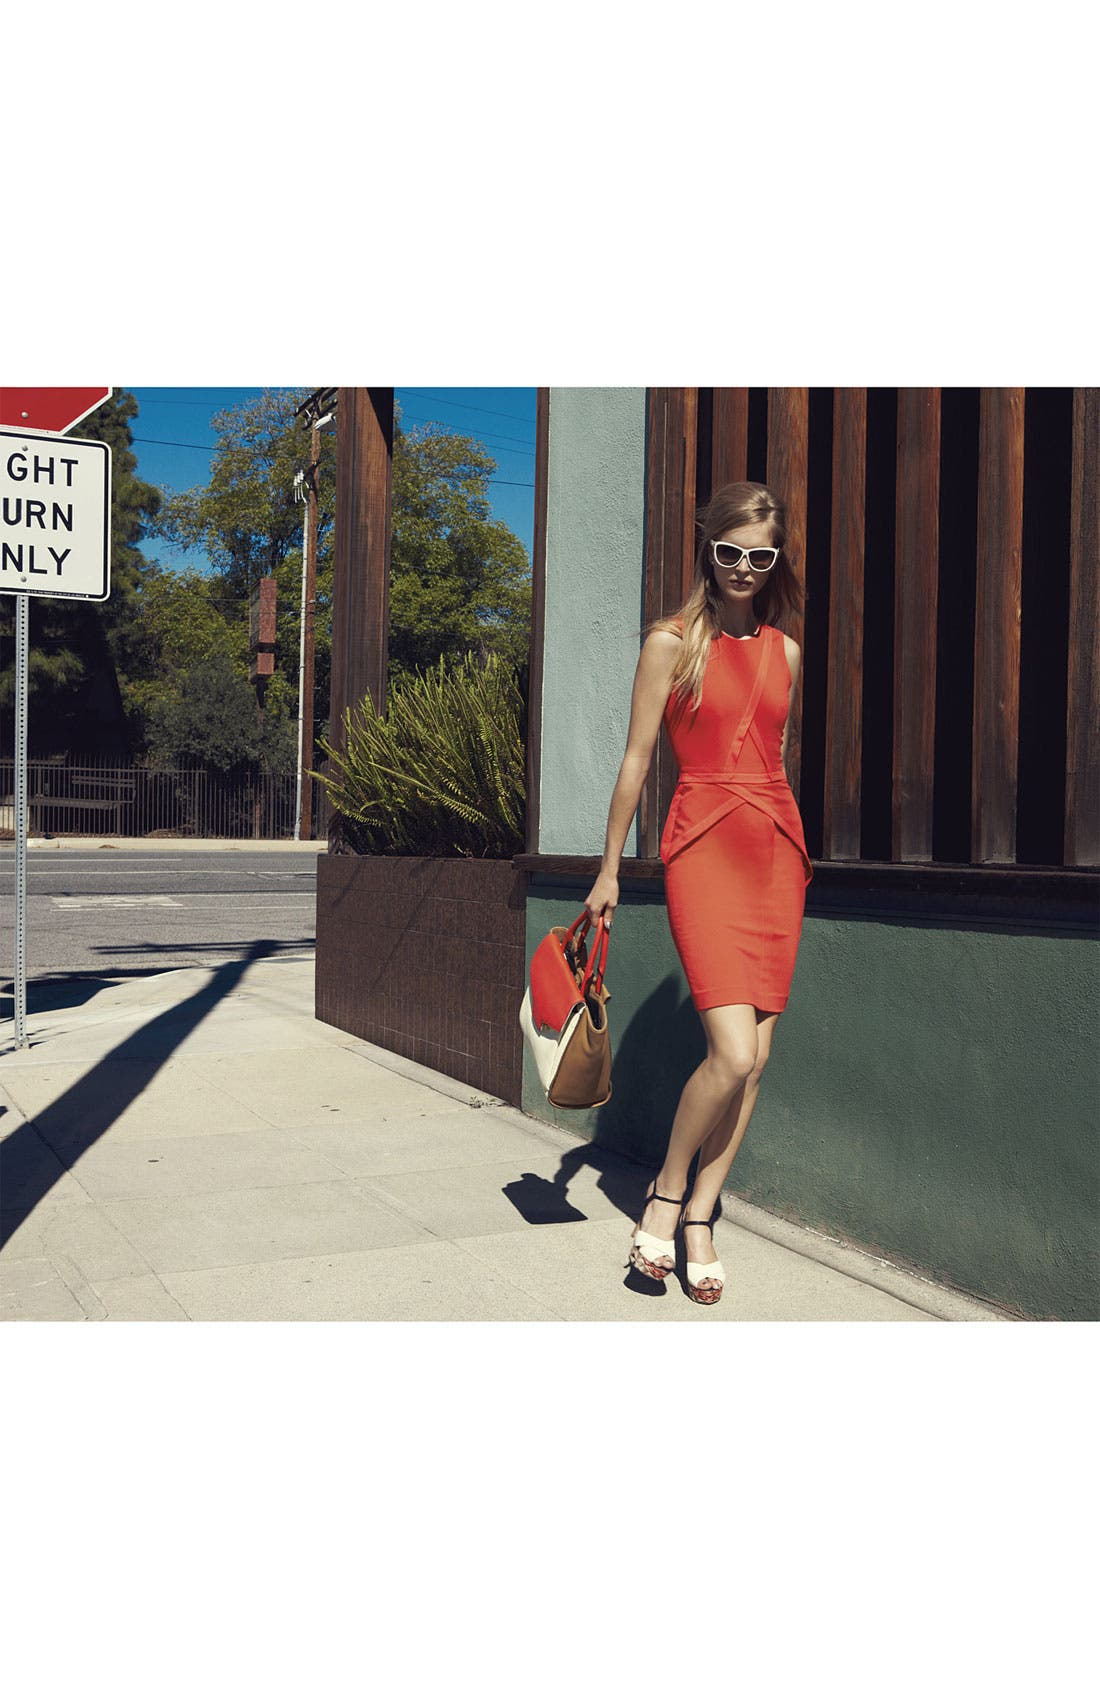 Main Image - BCBGMAXAZRIA Dress & Accessories